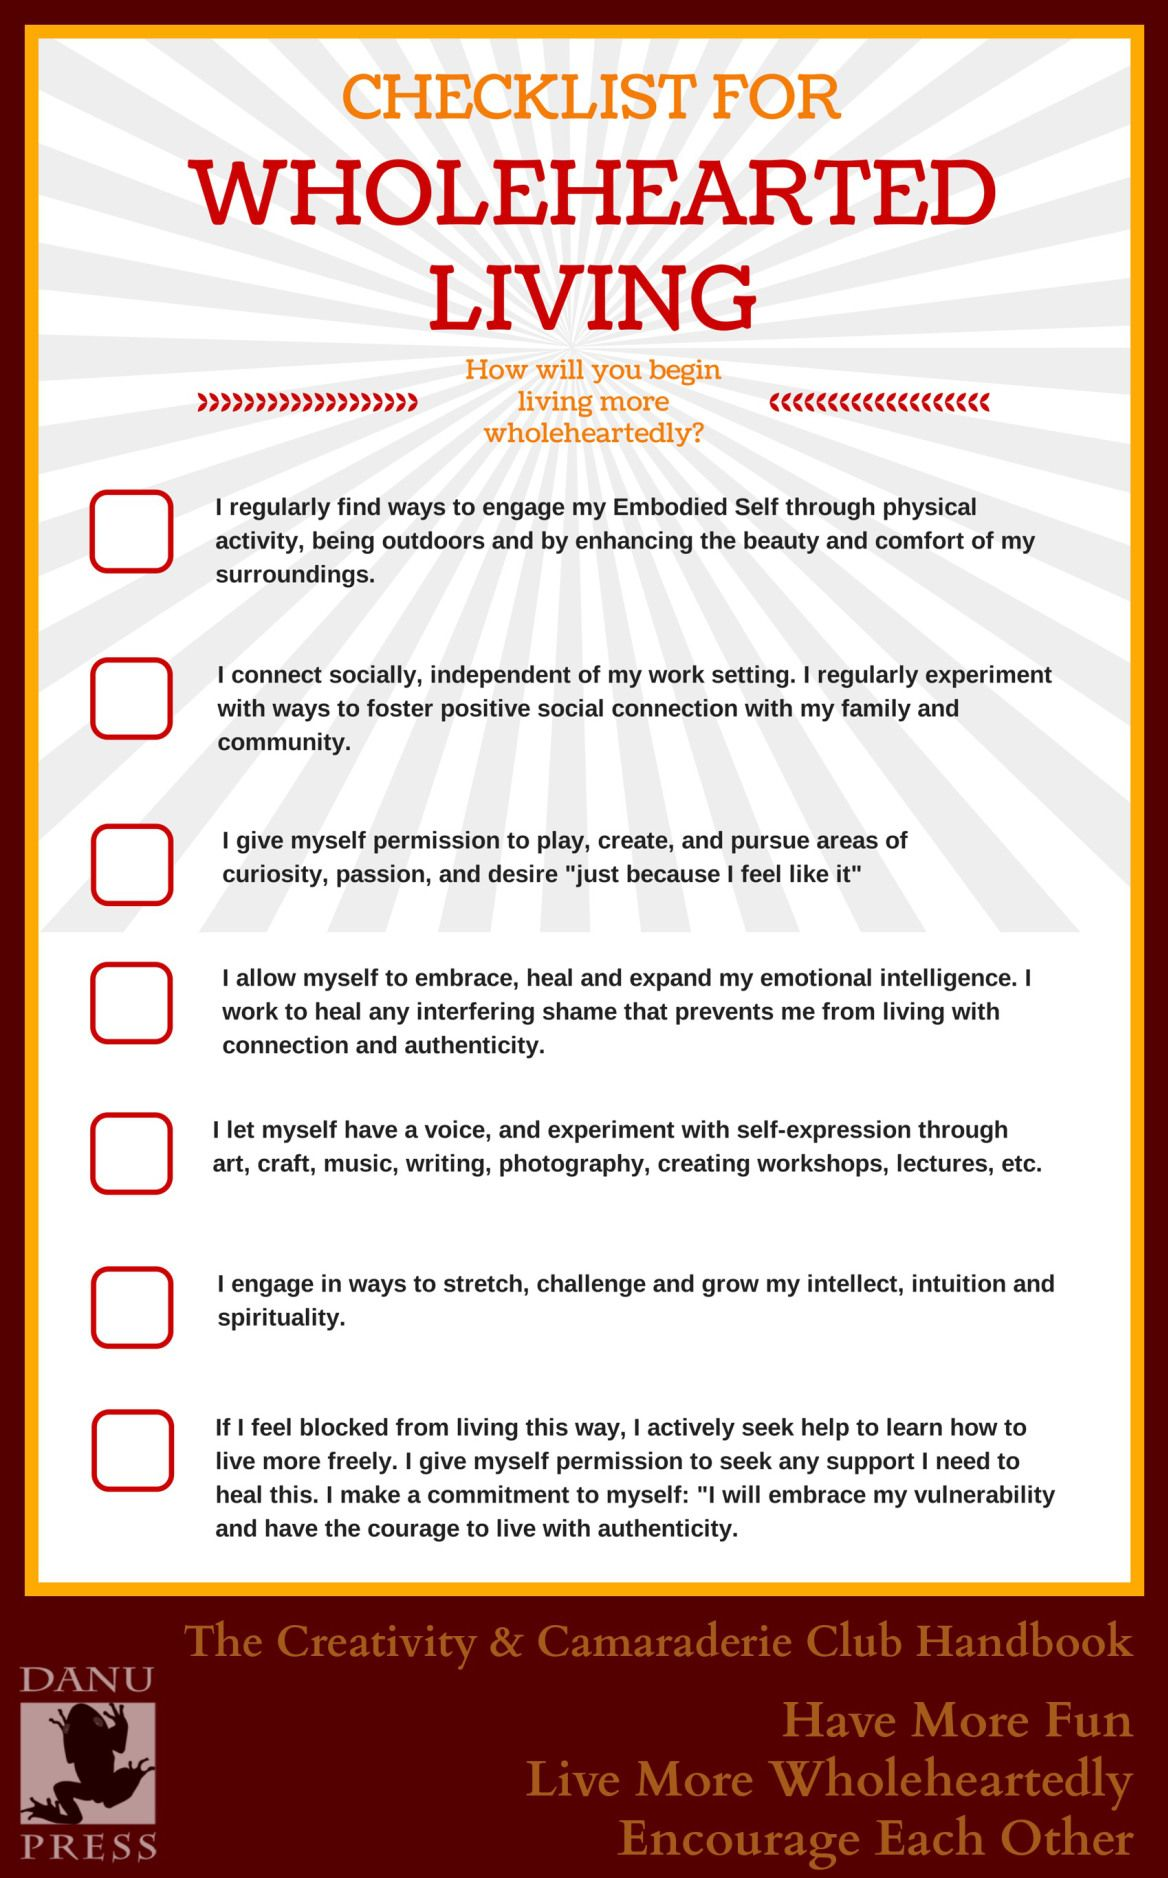 Click Through To Learn The 1 Enemy Of Wholehearted Living How Many On The Checklist Are You